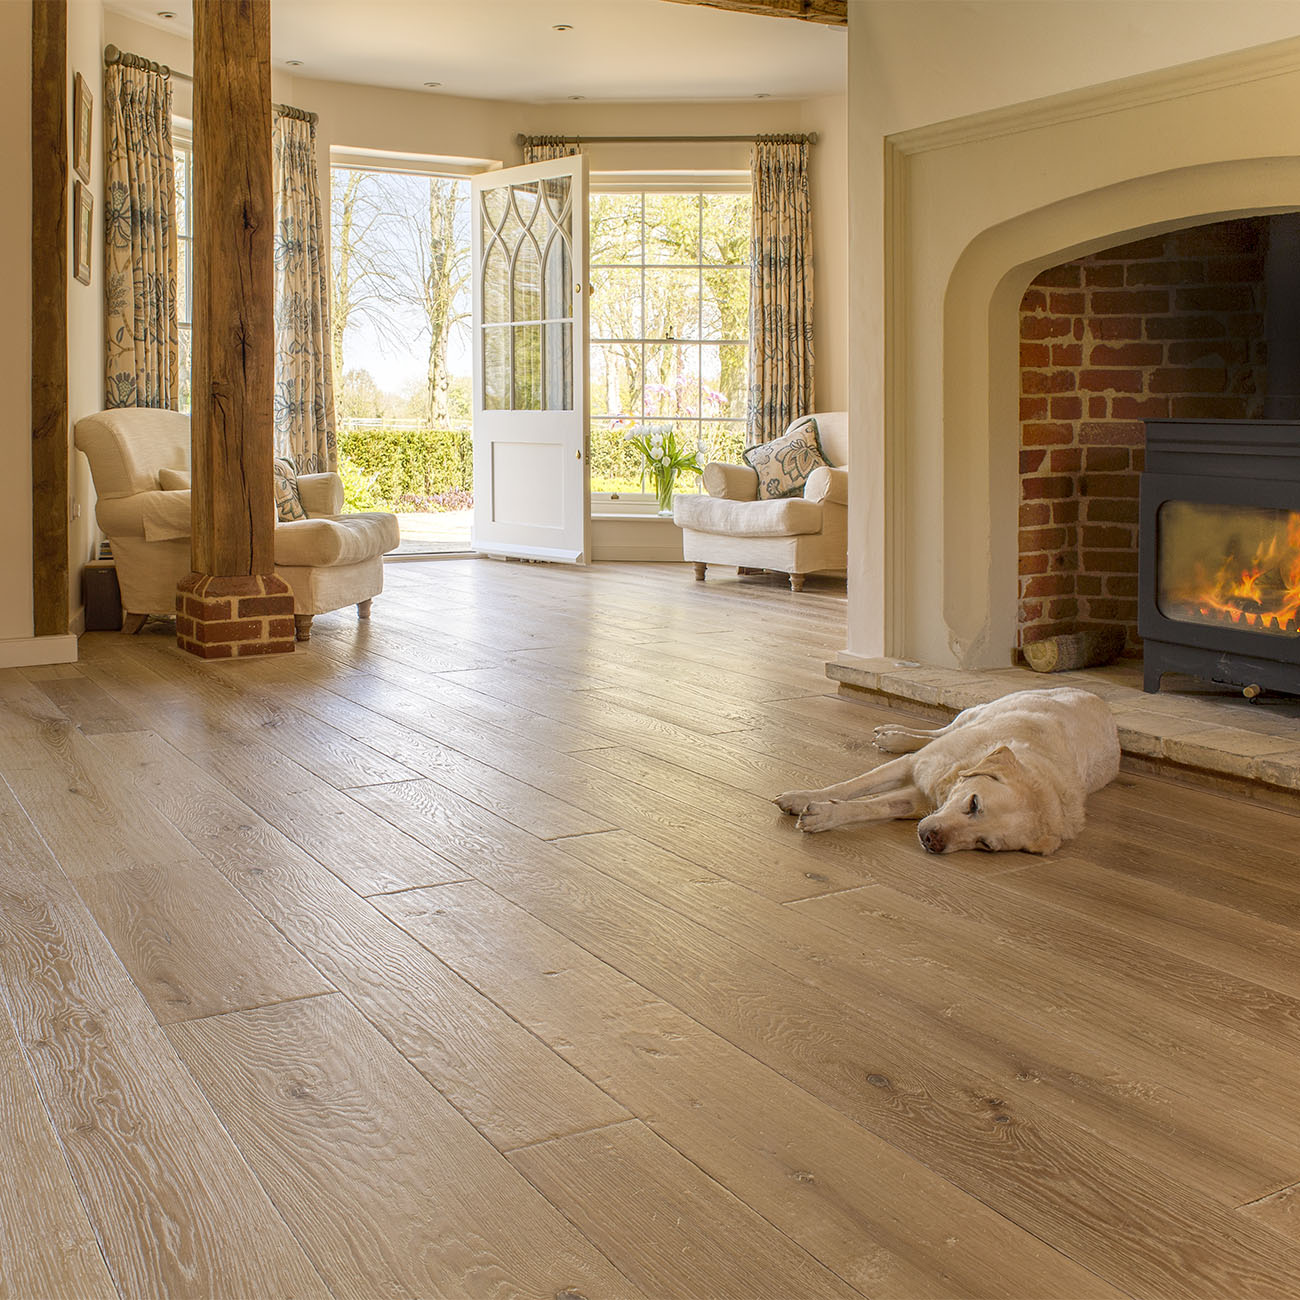 5 Generations Tudor oak wood flooring.jpg